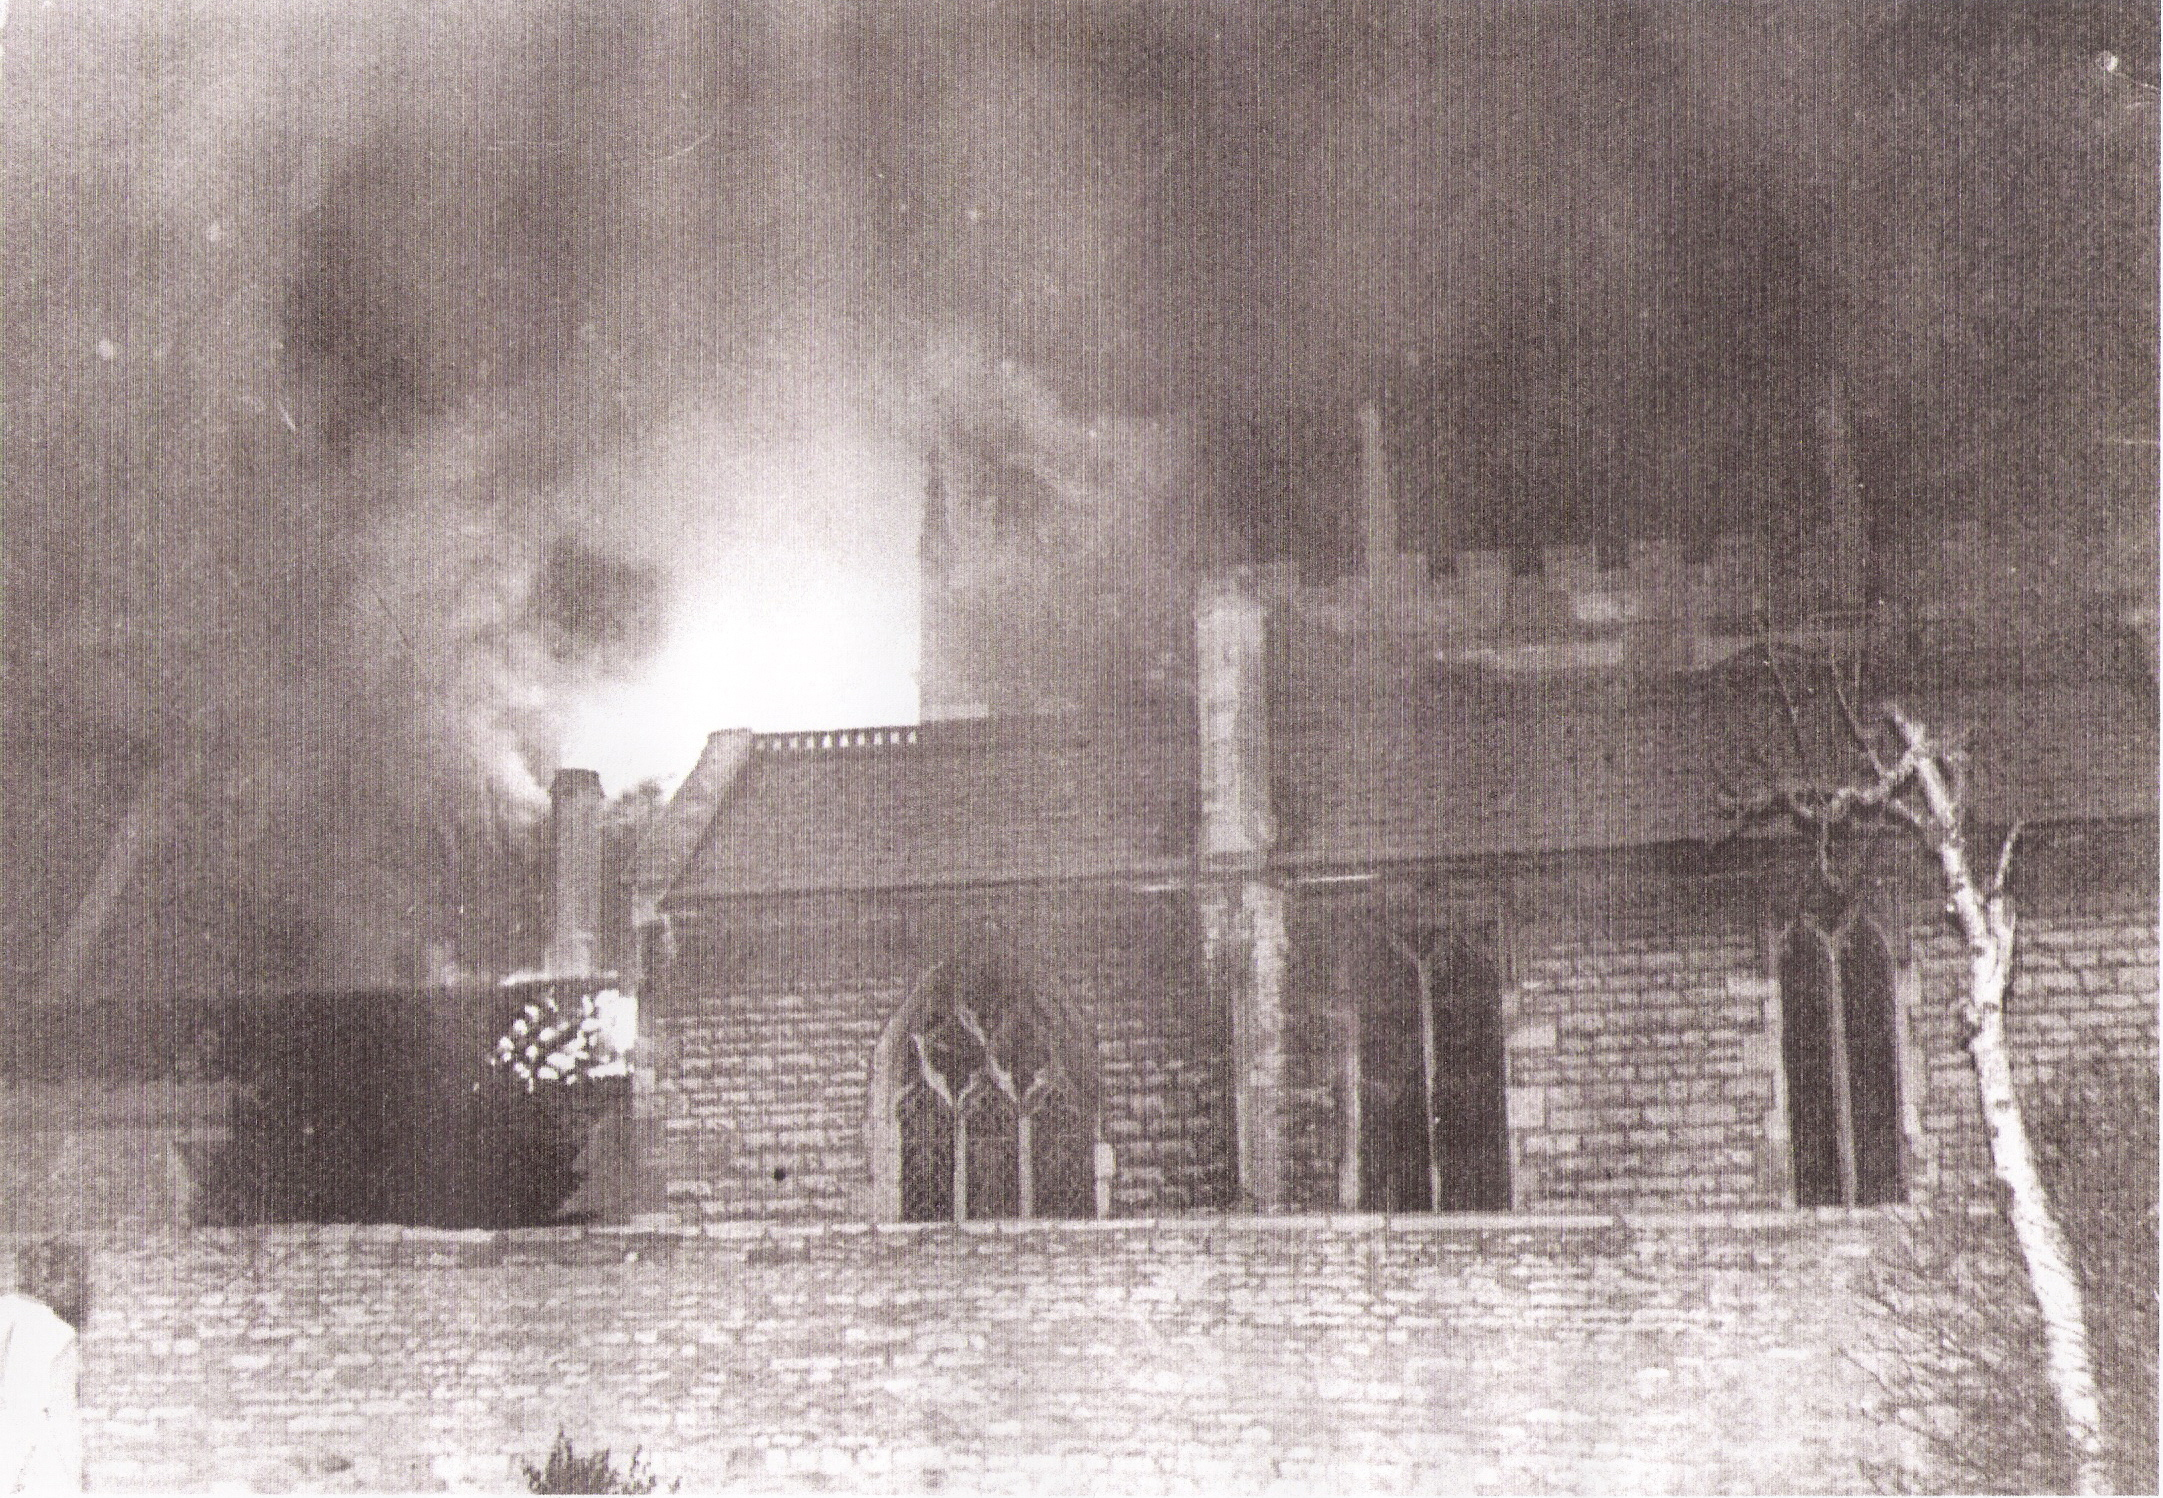 All Saints Church Branston on fire, Christmas Day 1962.